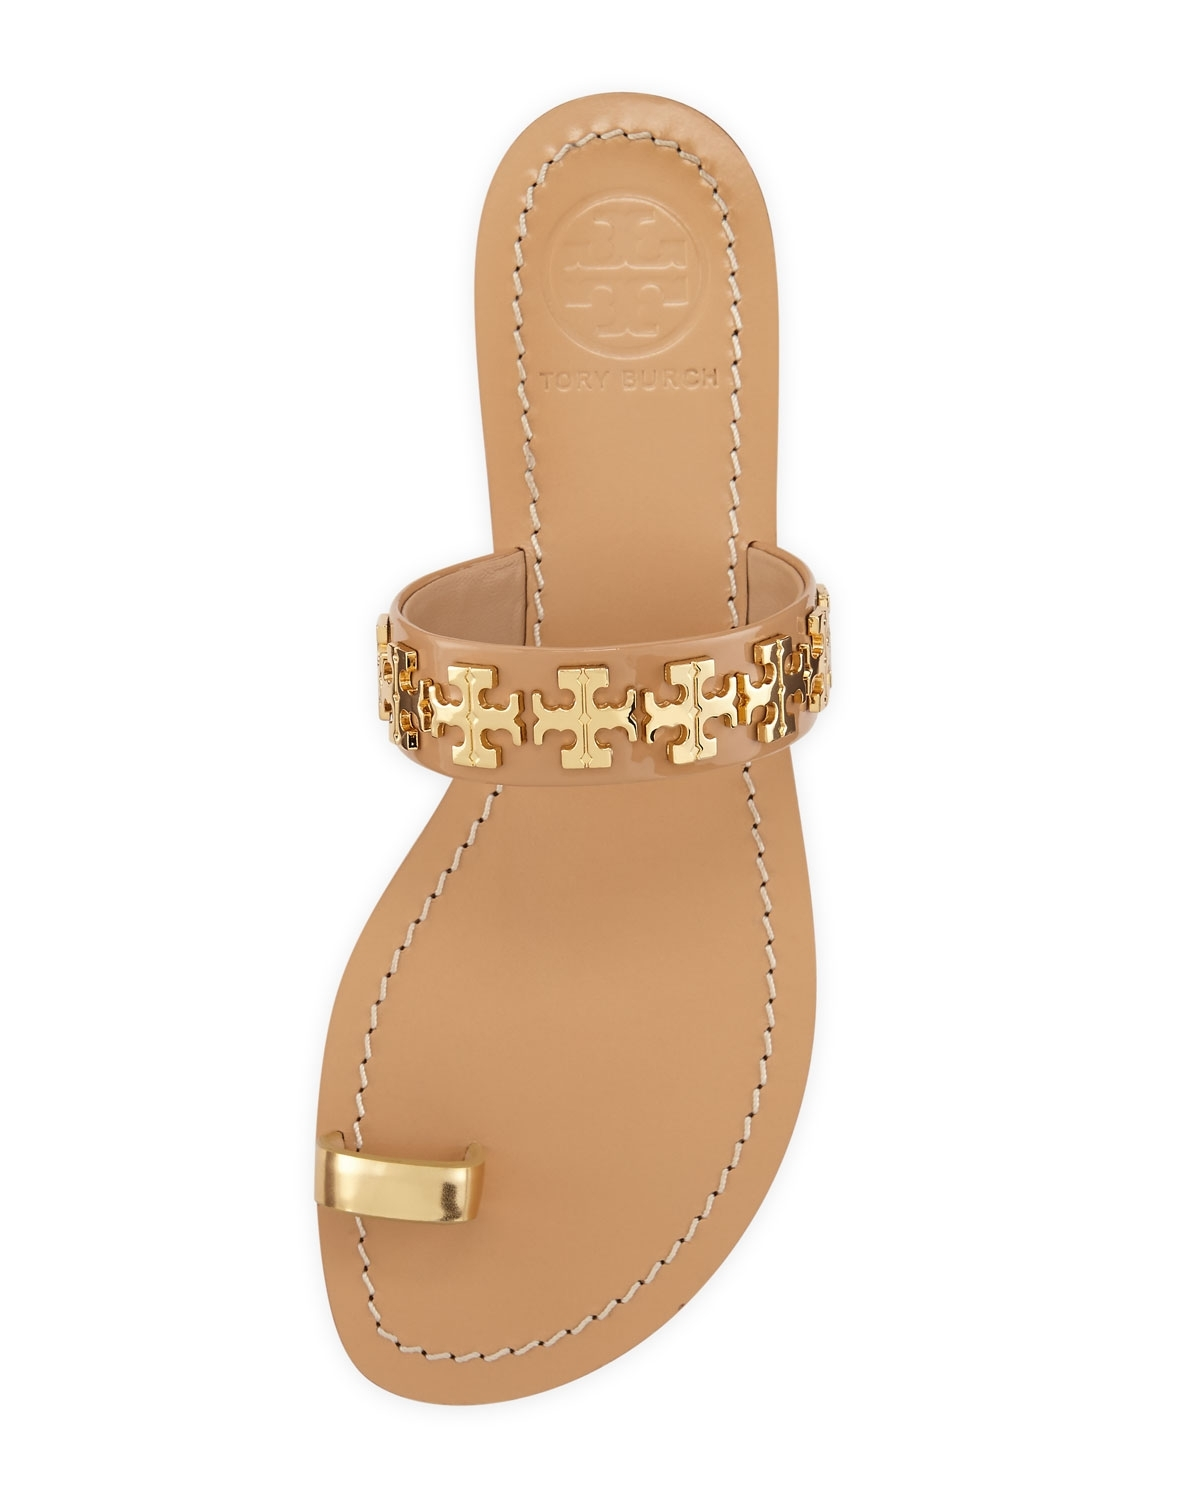 Tory Burch Val Patent Toe Ring Sandal, Camellia Pink/gold | Omg For Most Popular Macy's Toe Rings (View 14 of 15)